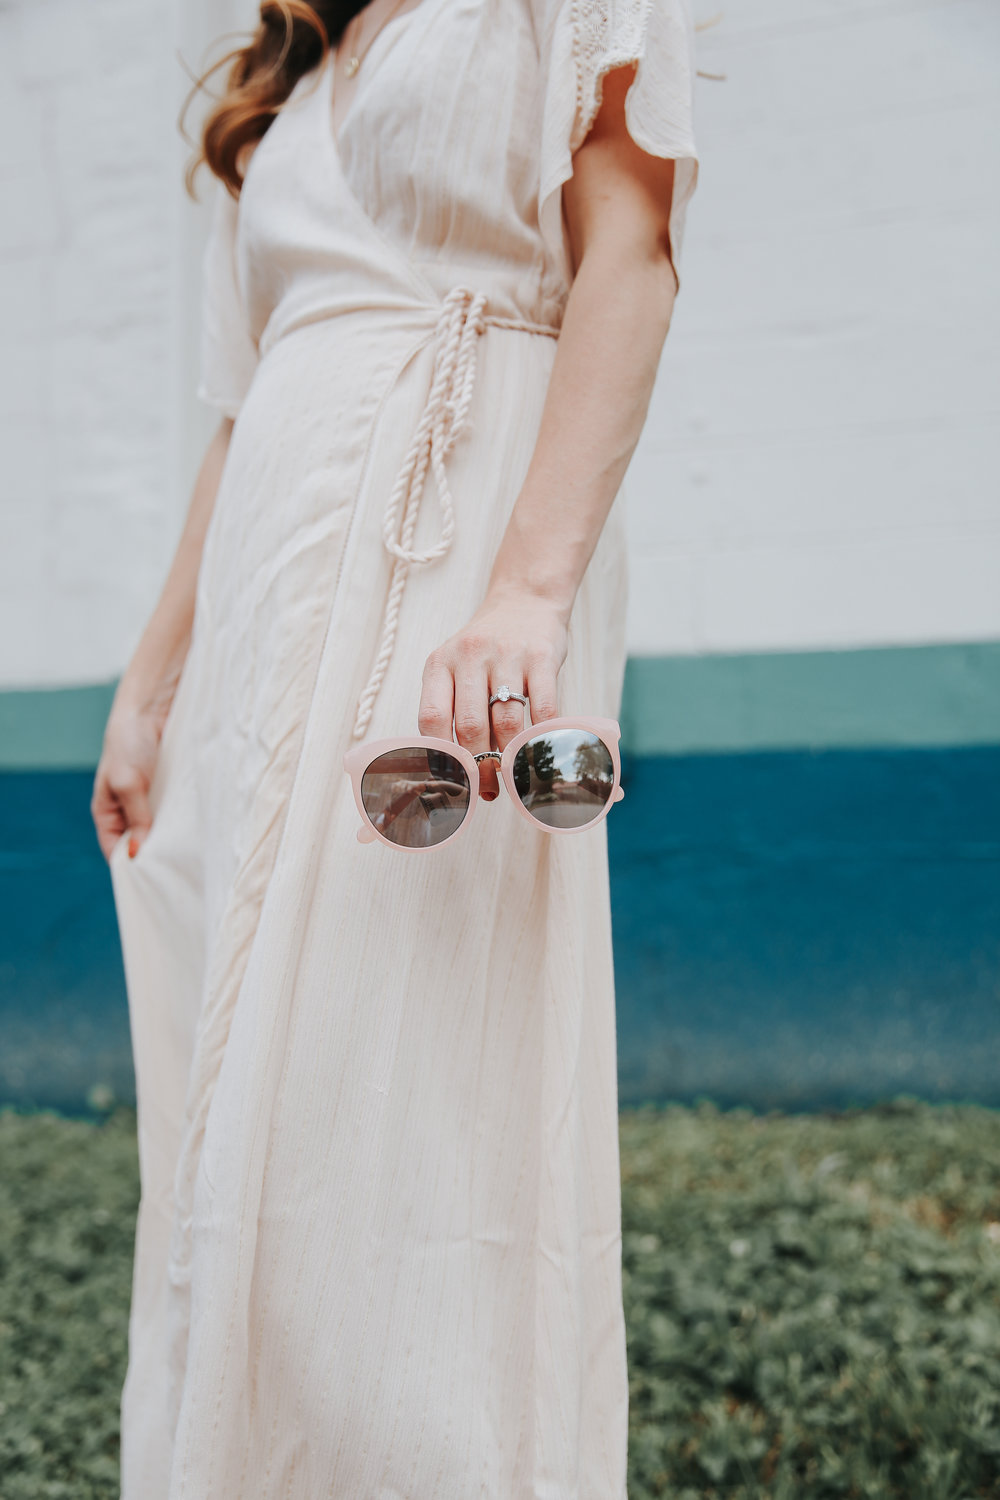 Boutique women's dress and sunglasses